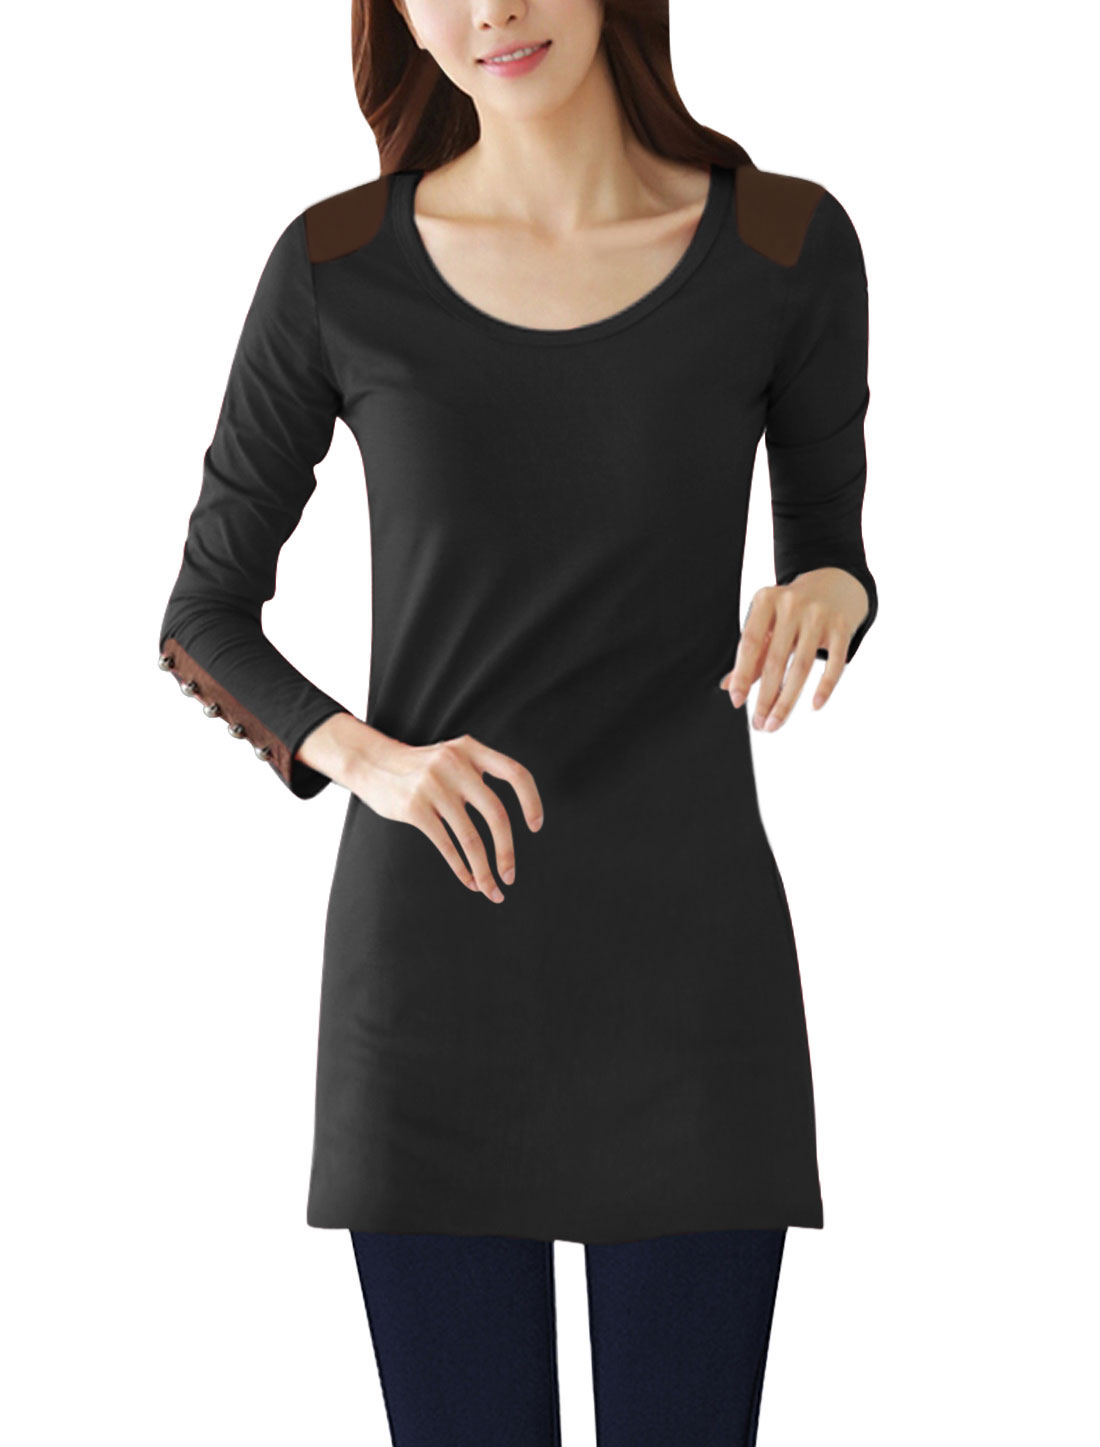 Women Round Neck Long Sleeves Casual Tunic Shirt Black S